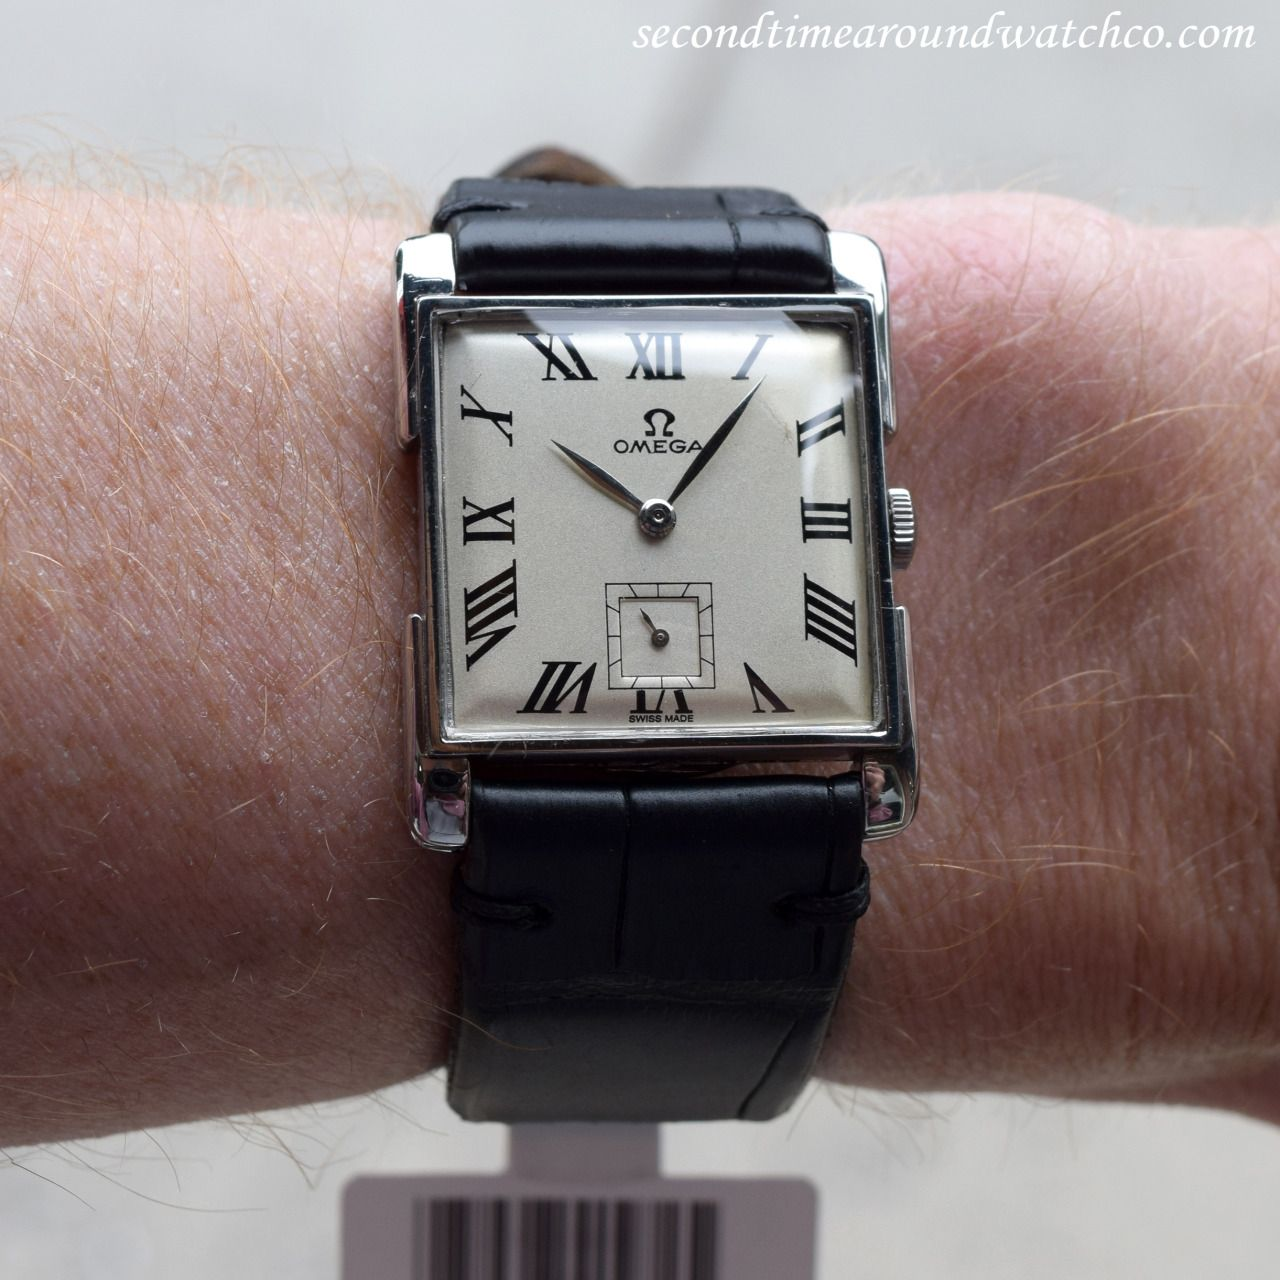 2283496ffc633 A 1946 stainless steel Omega Ref. 3813-4 square-shaped watch. This watch  features unique